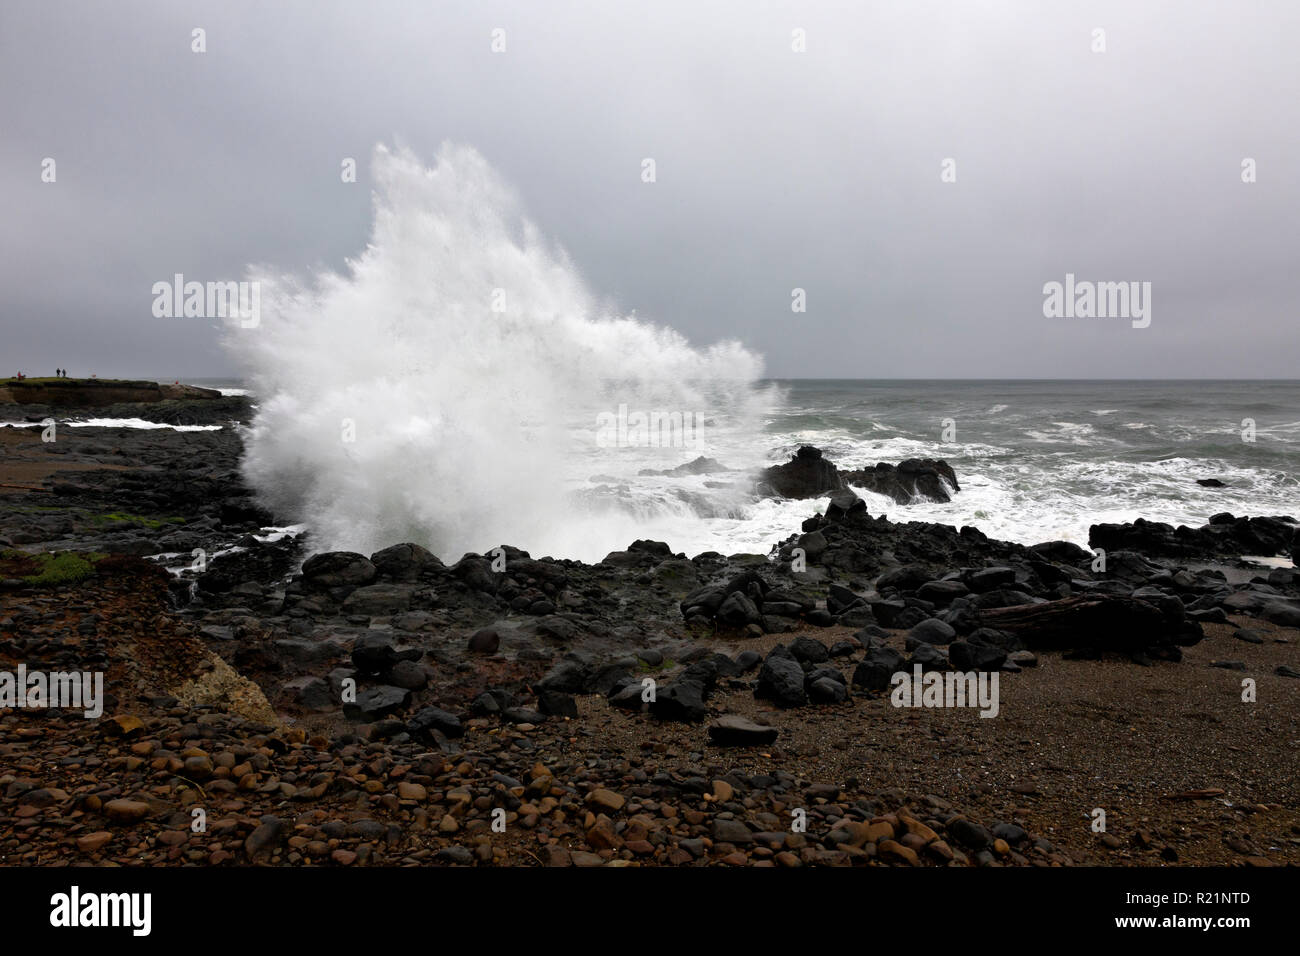 OR02395-00...OREGON - Crashing wave on a stormy day at Smelt Sands State Recreation Stie - Stock Image